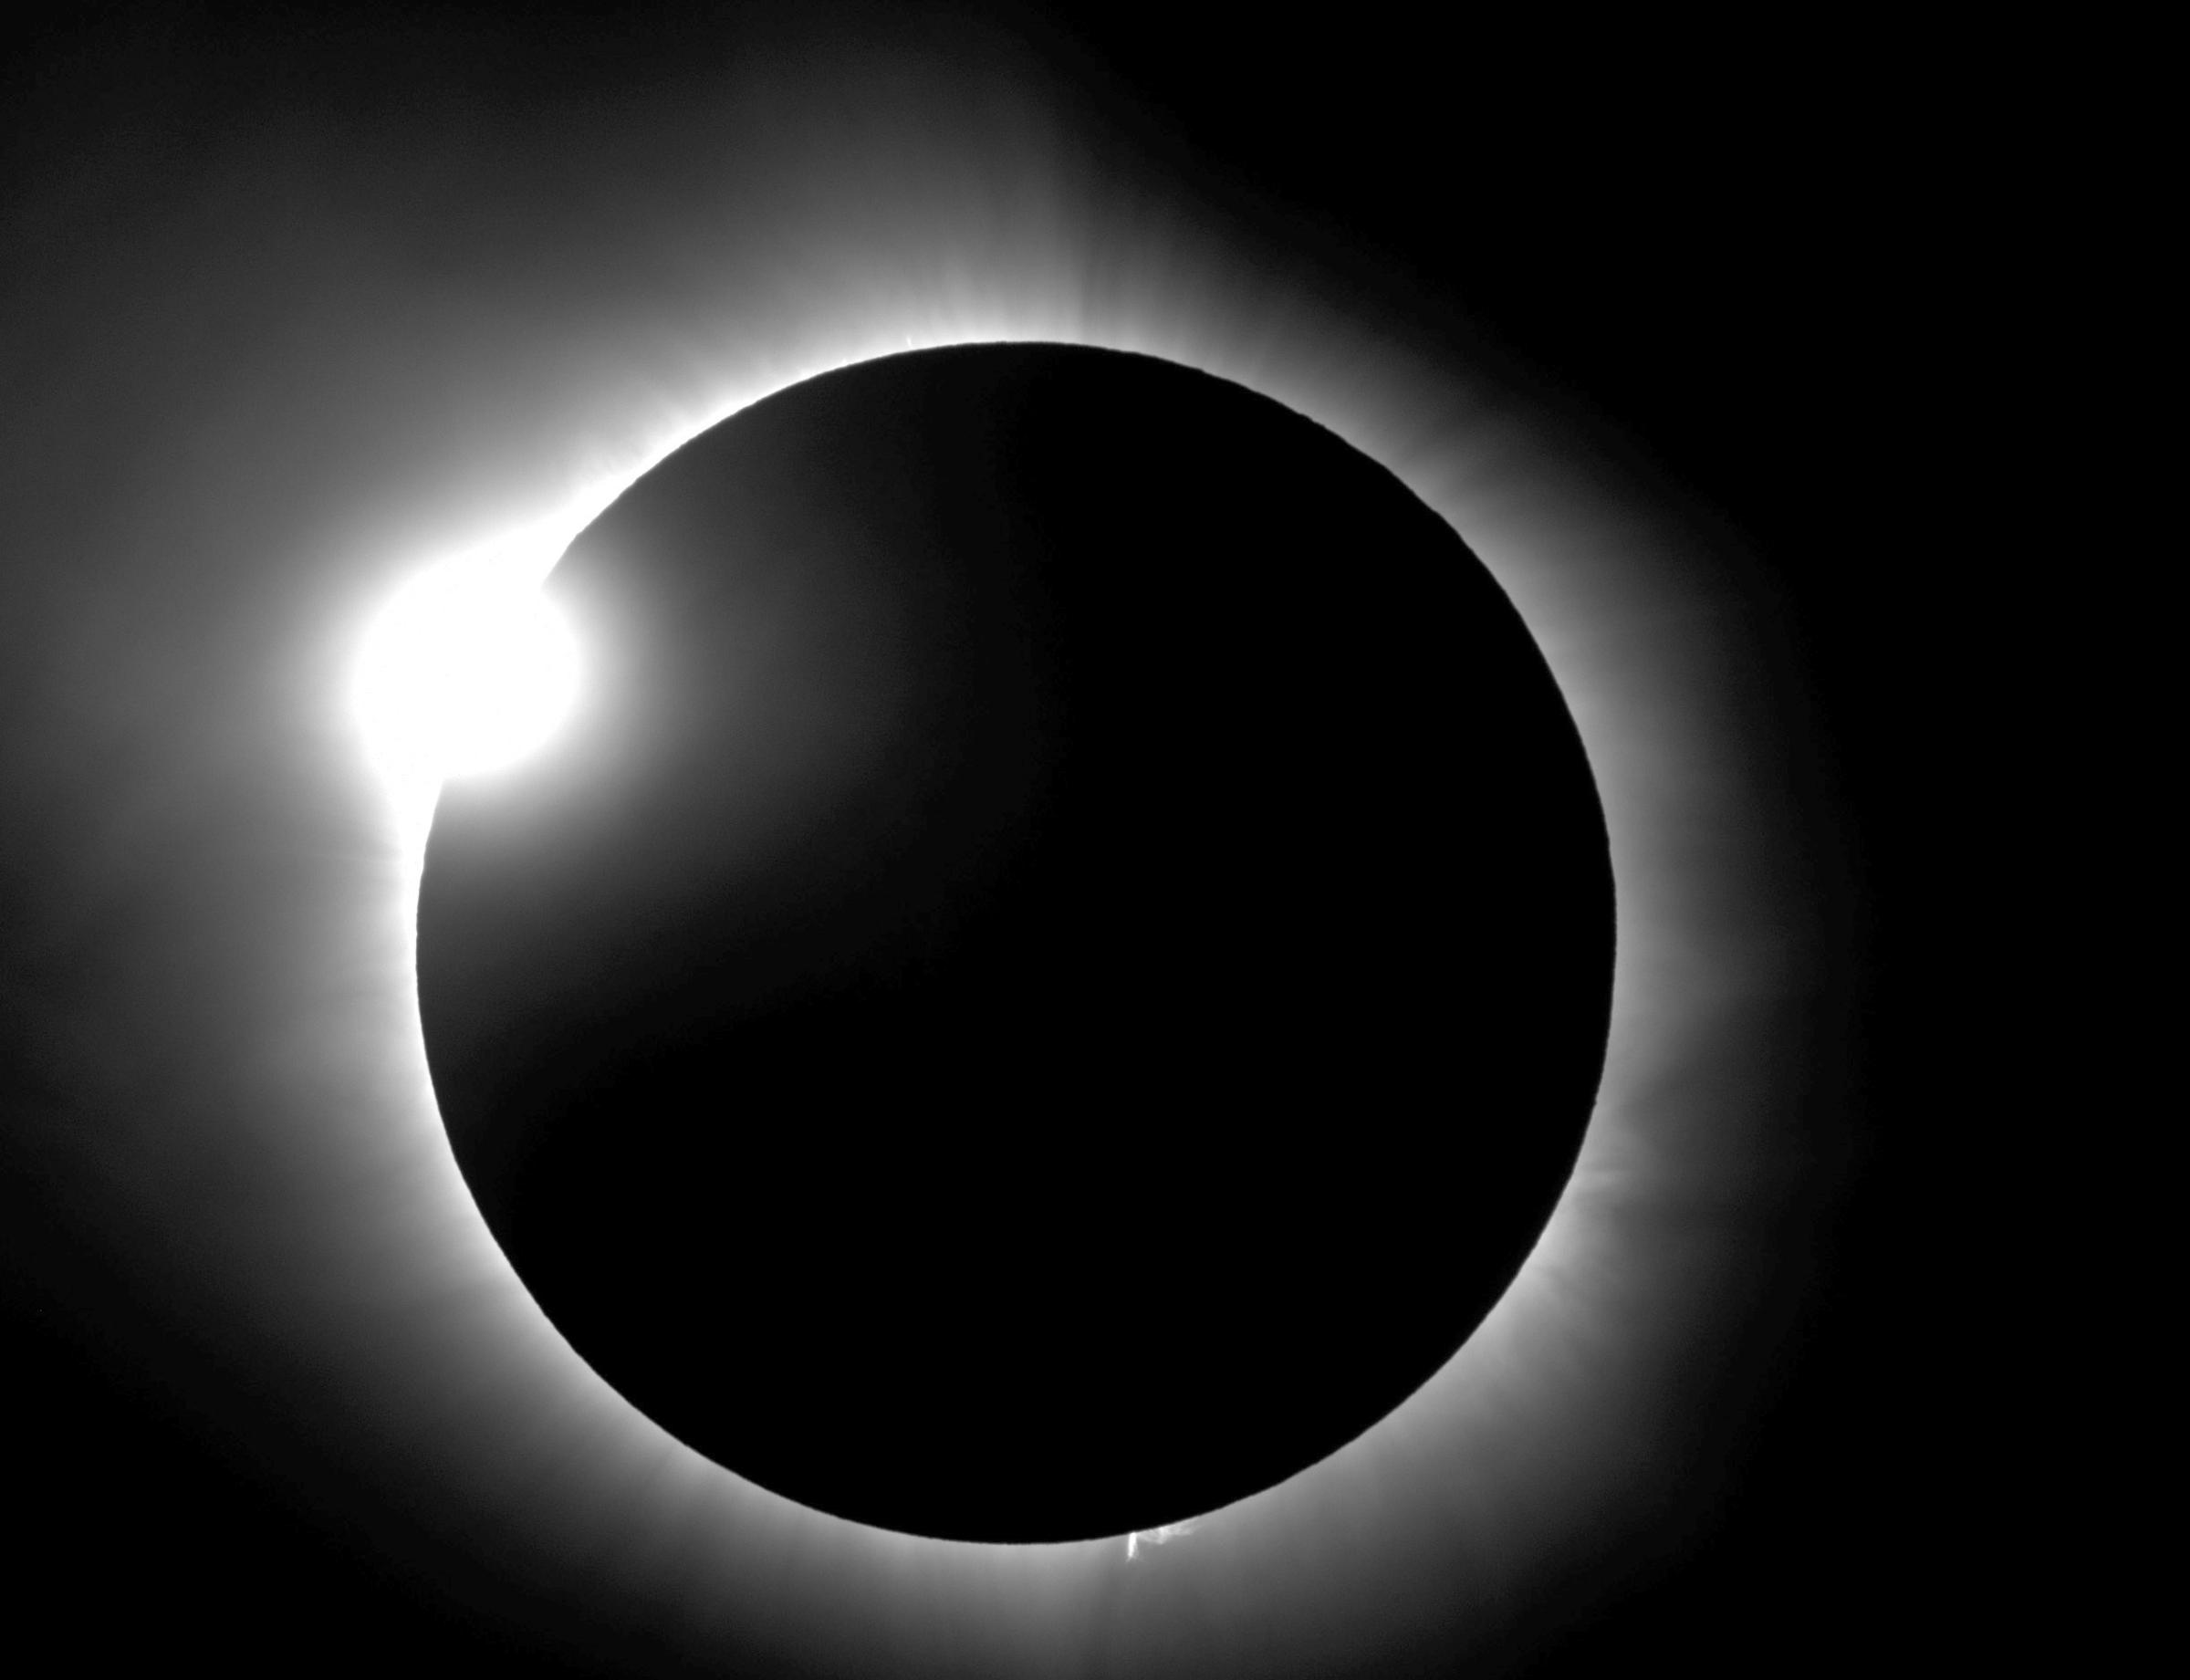 Will you be viewing the solar eclipse? Send us your photos